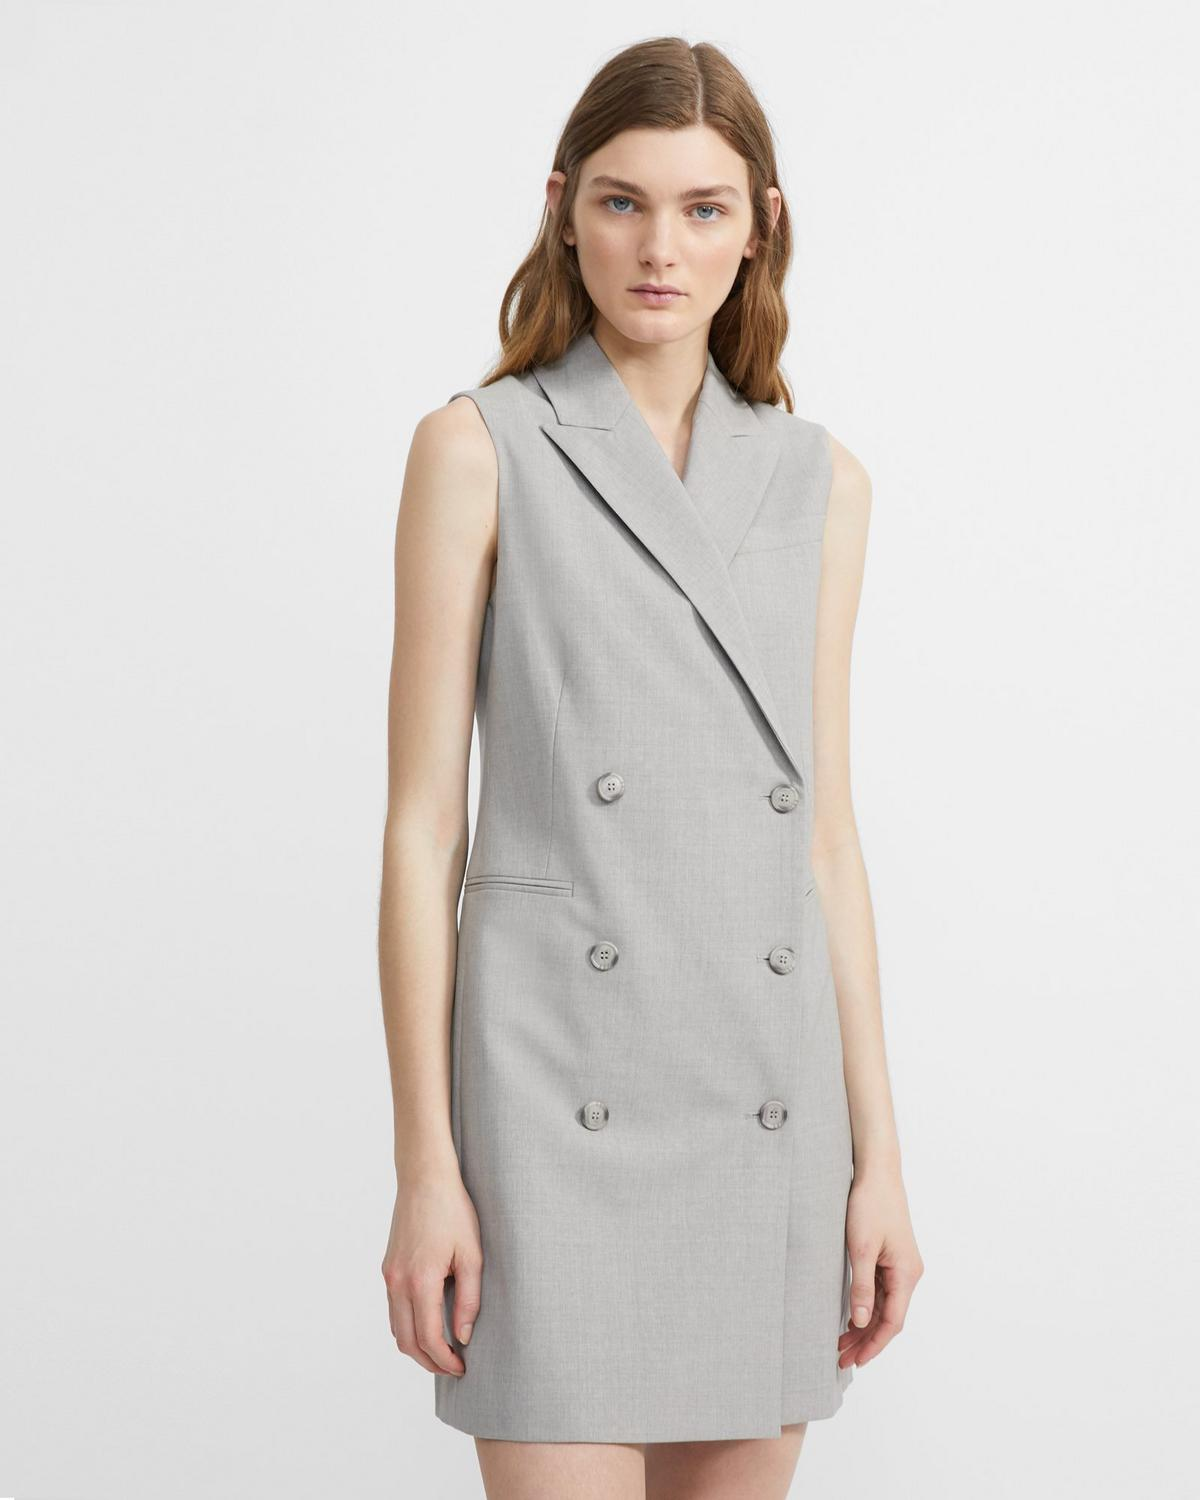 f2ff31aaf9dbe Good Wool Sleeveless Blazer Dress 0 - click to view larger image